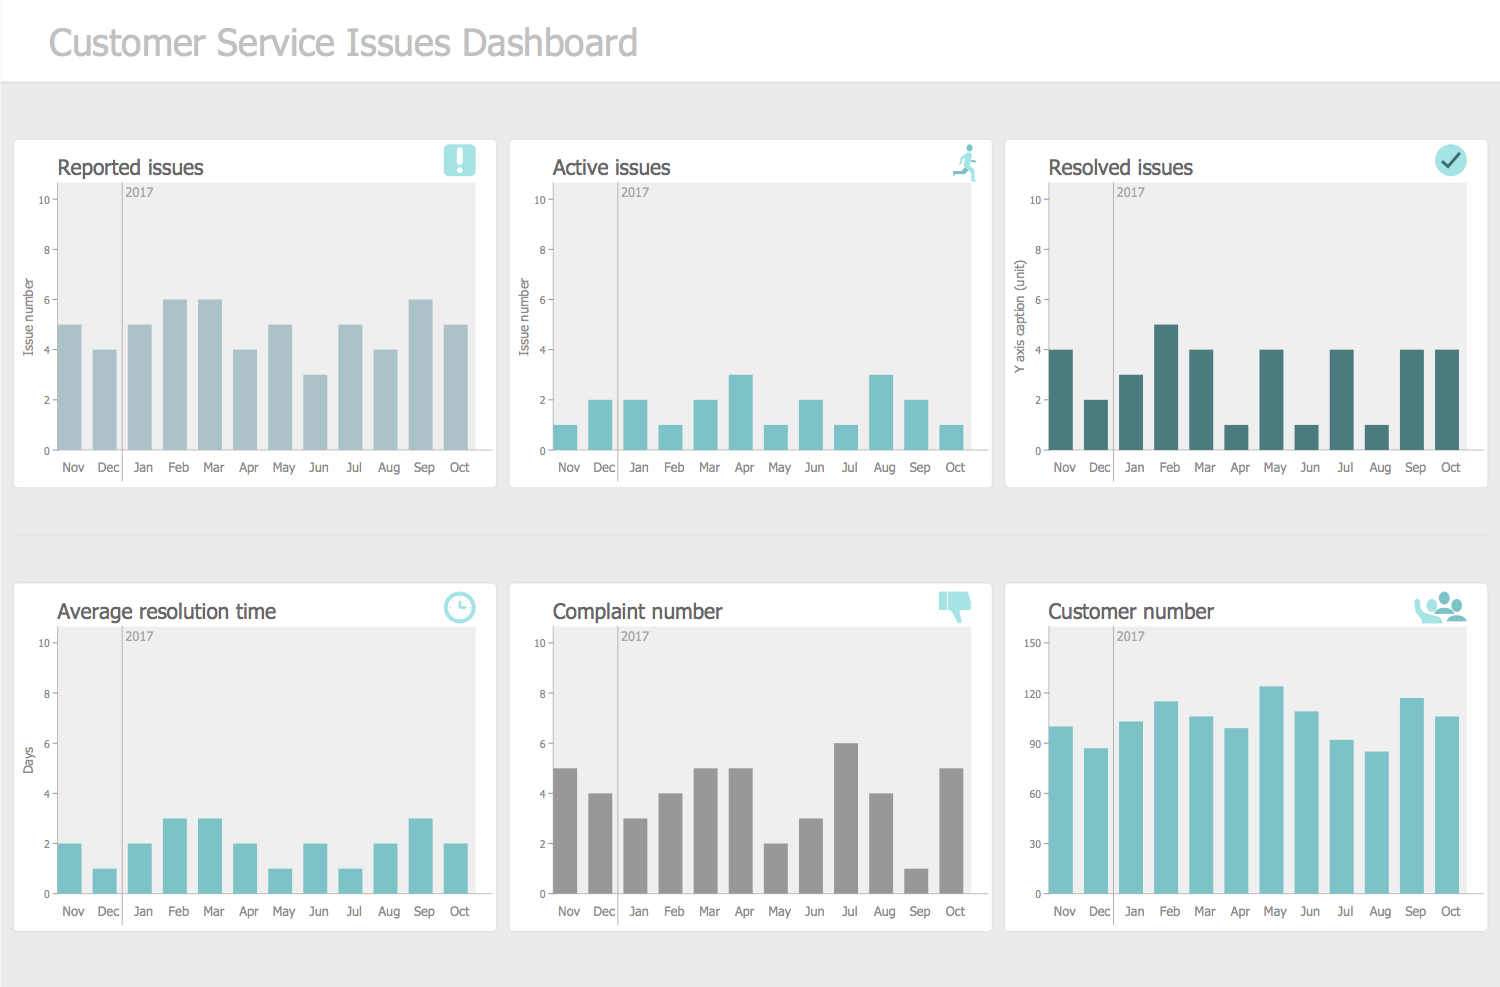 Customer Service Issues Dashboard